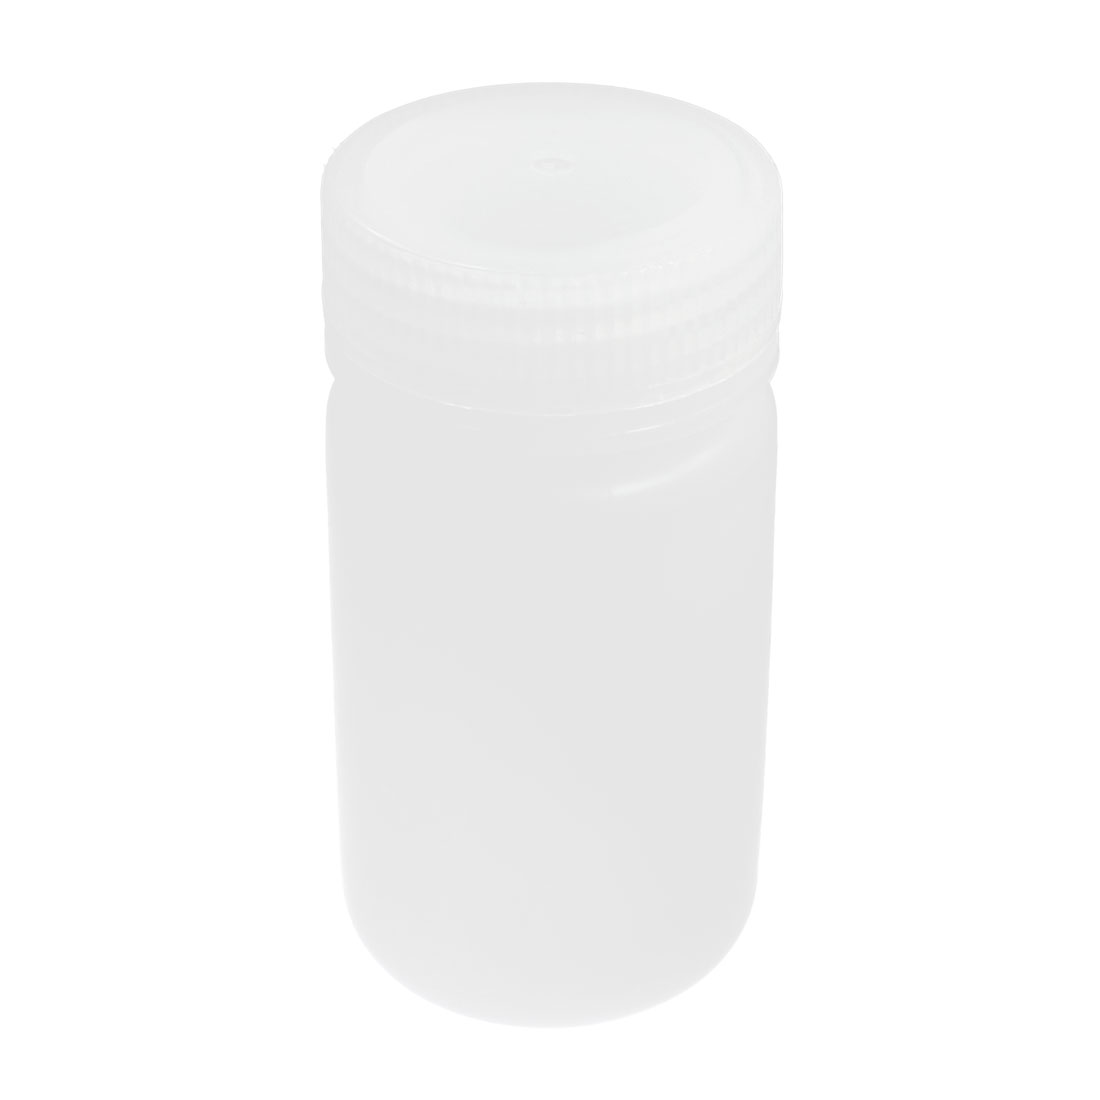 125ml 4 oz White Plastic Cylinder Shaped Chemical Reagent Bottle